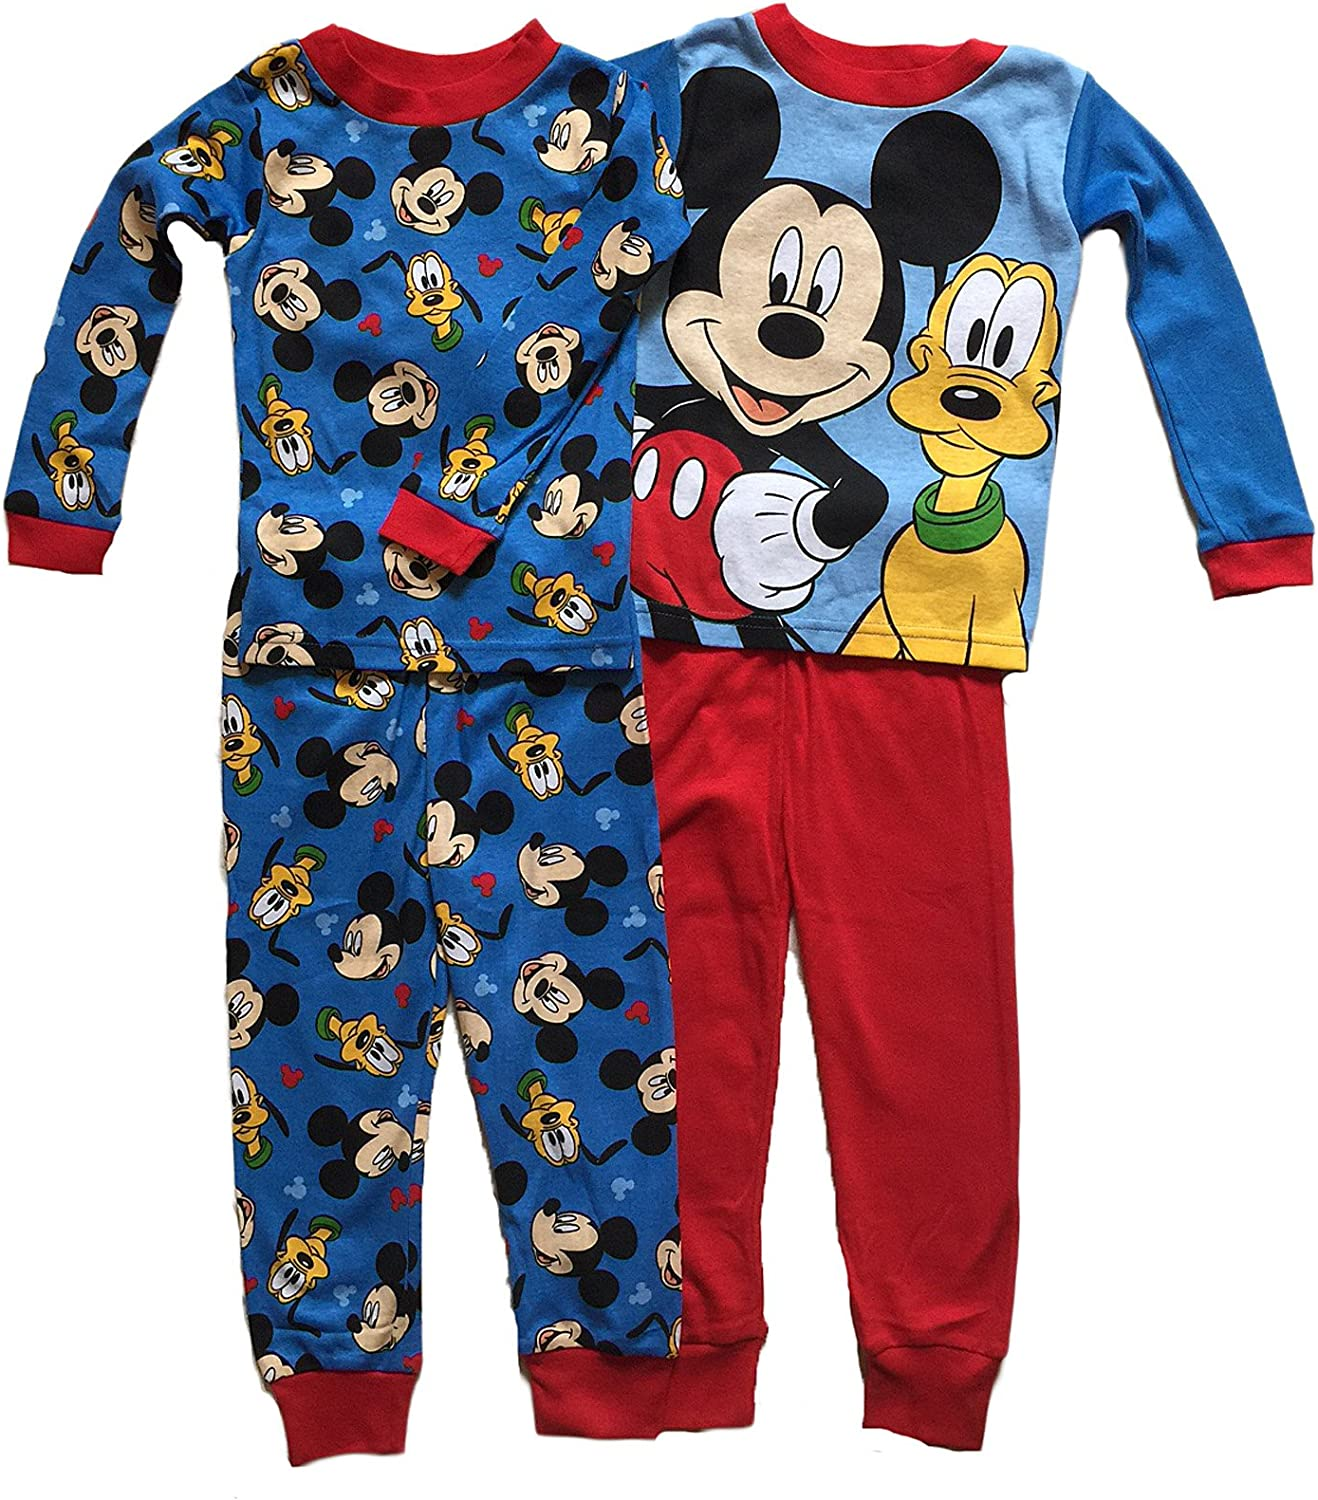 Disney Little New Max 89% OFF Orleans Mall Boys Toddler Mickey Mouse Pc Cotton Pluto 4 Paja